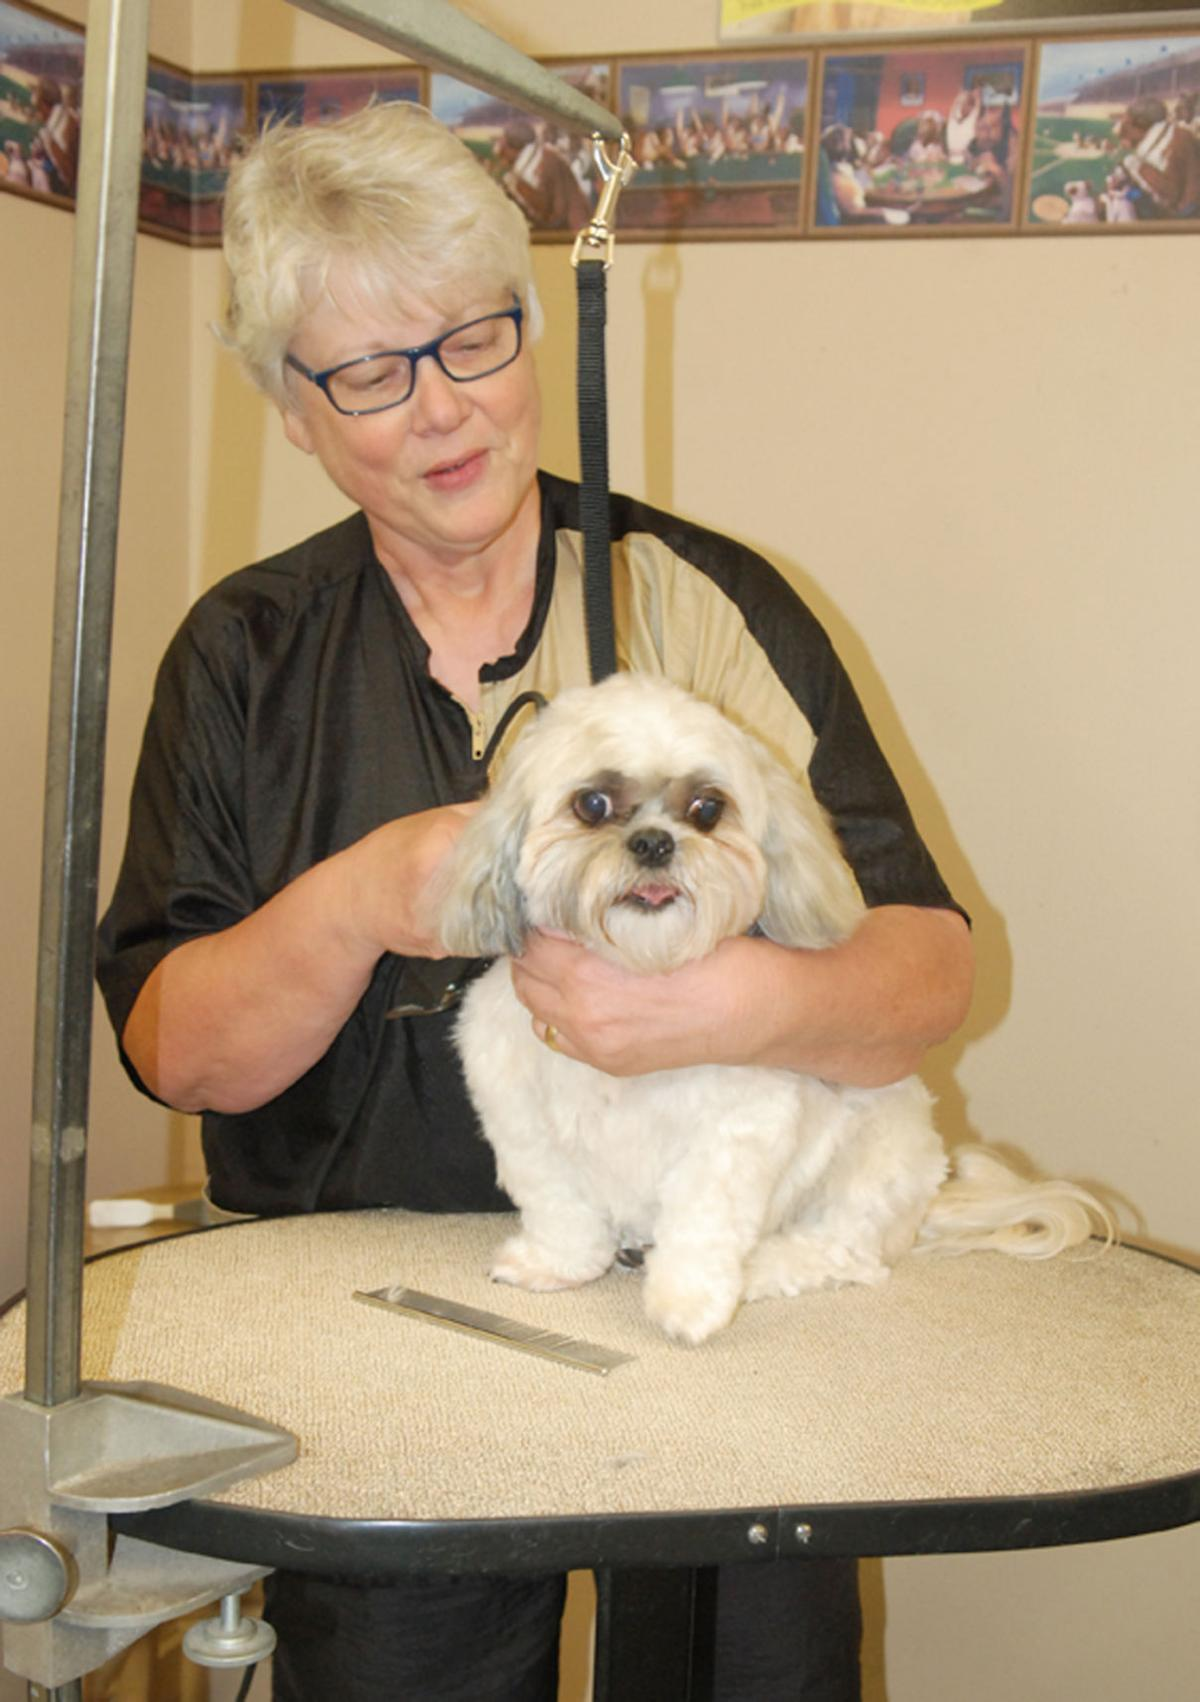 Dogs-R-Us Grooming to close doors in July | Pets